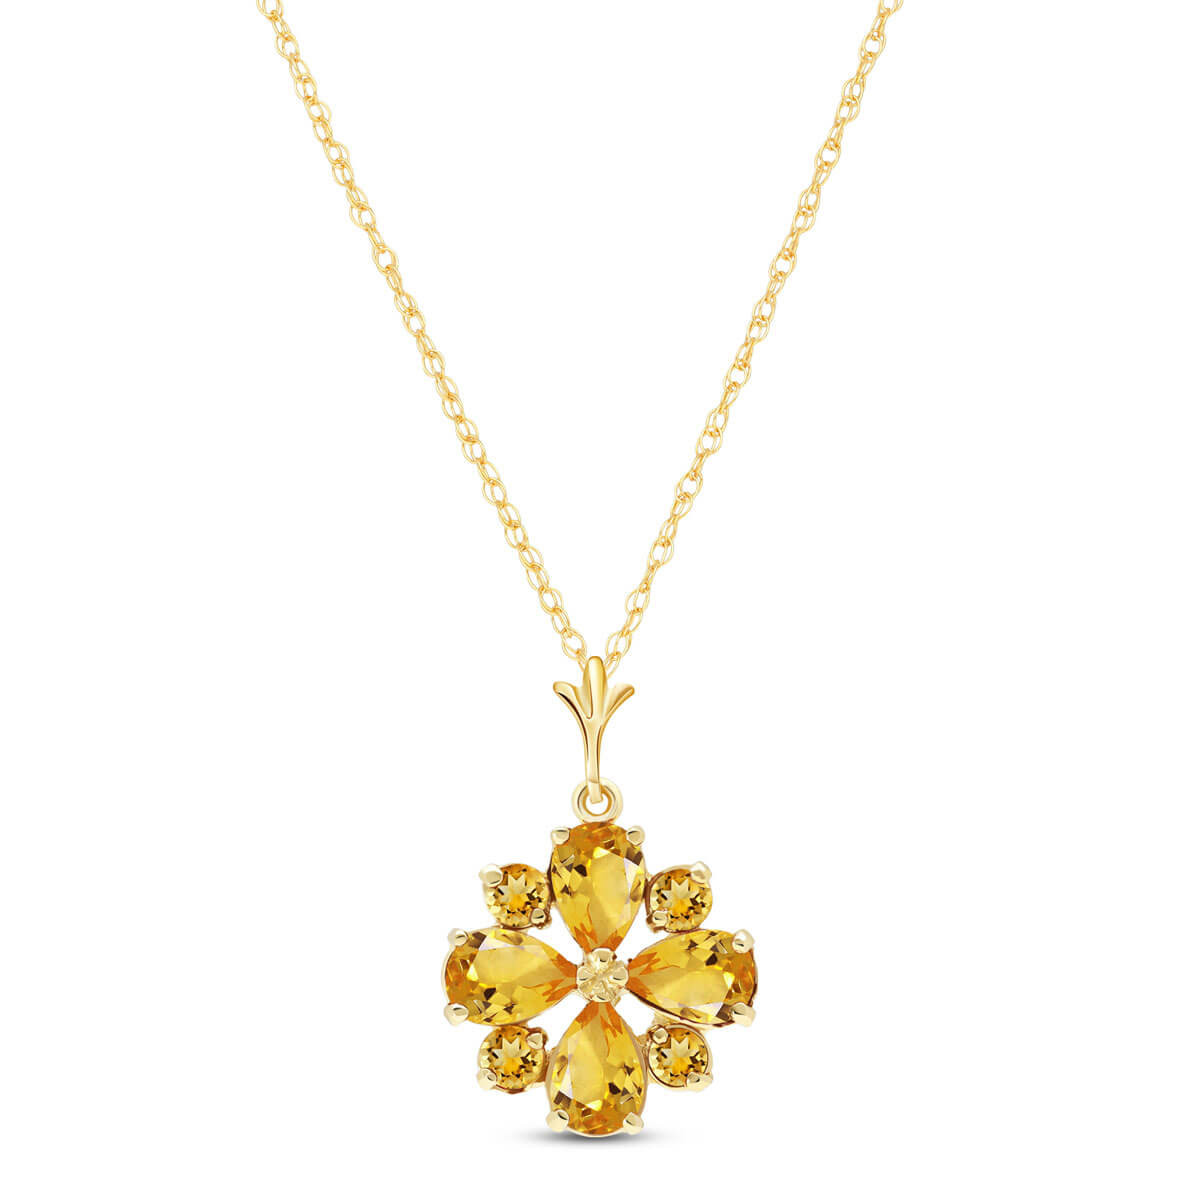 Citrine Sunflower Pendant Necklace 2.43 ctw in 9ct Gold